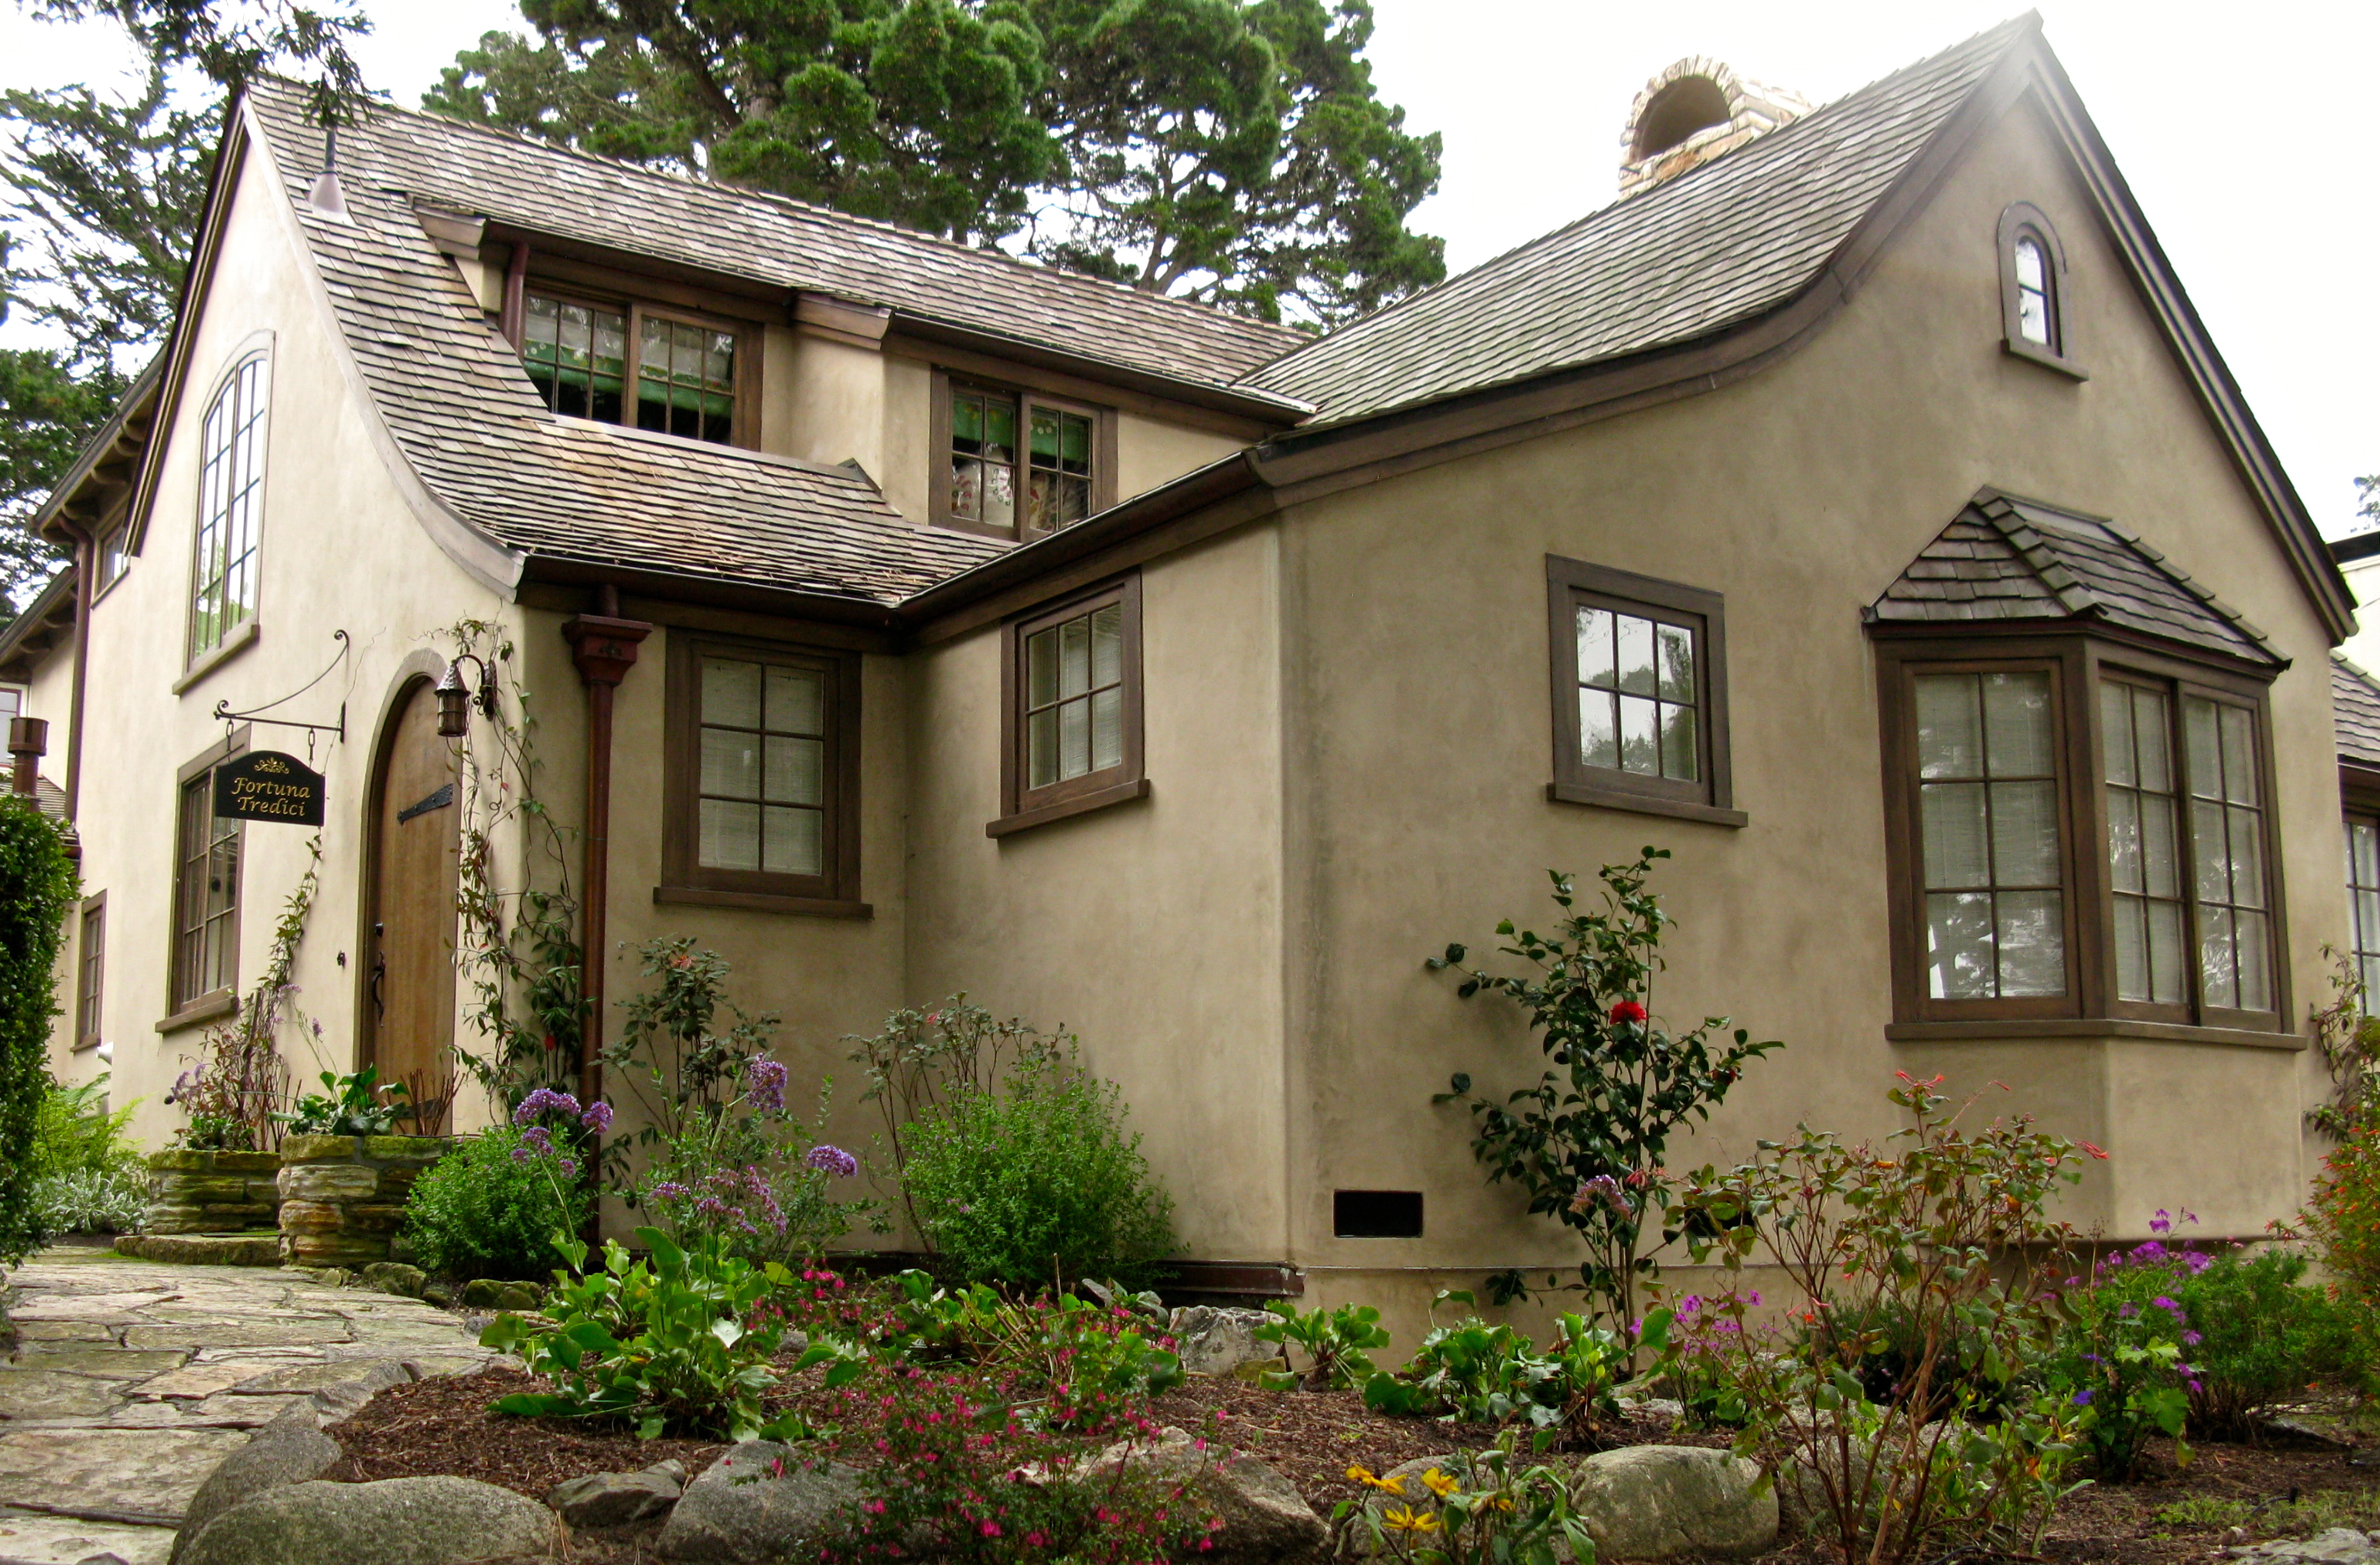 THE TEN WINKEL HOUSE ON CARMEL'S HISTORIC REGISTER